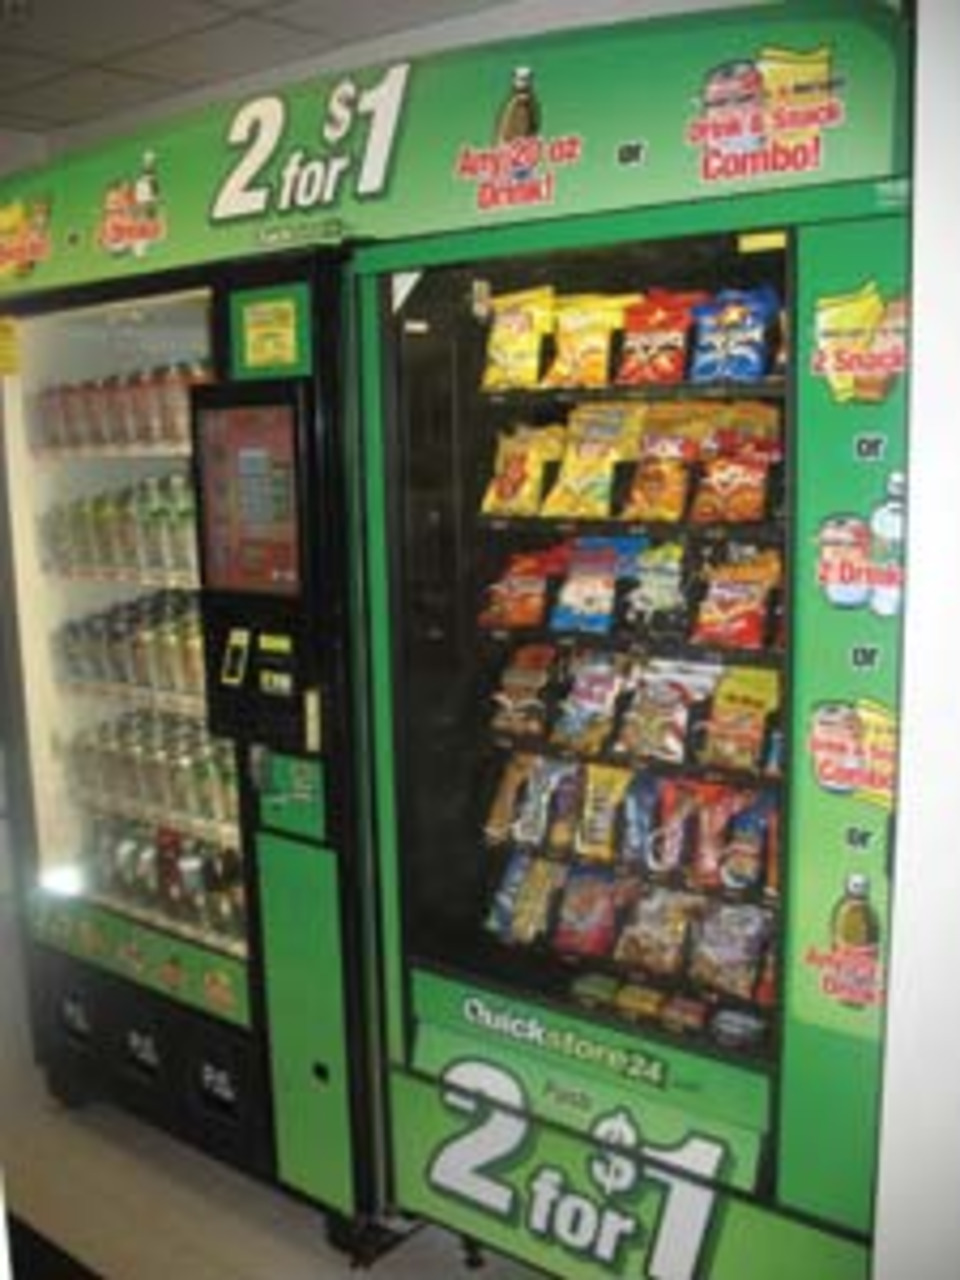 High-tech Vending System Grabs Placements